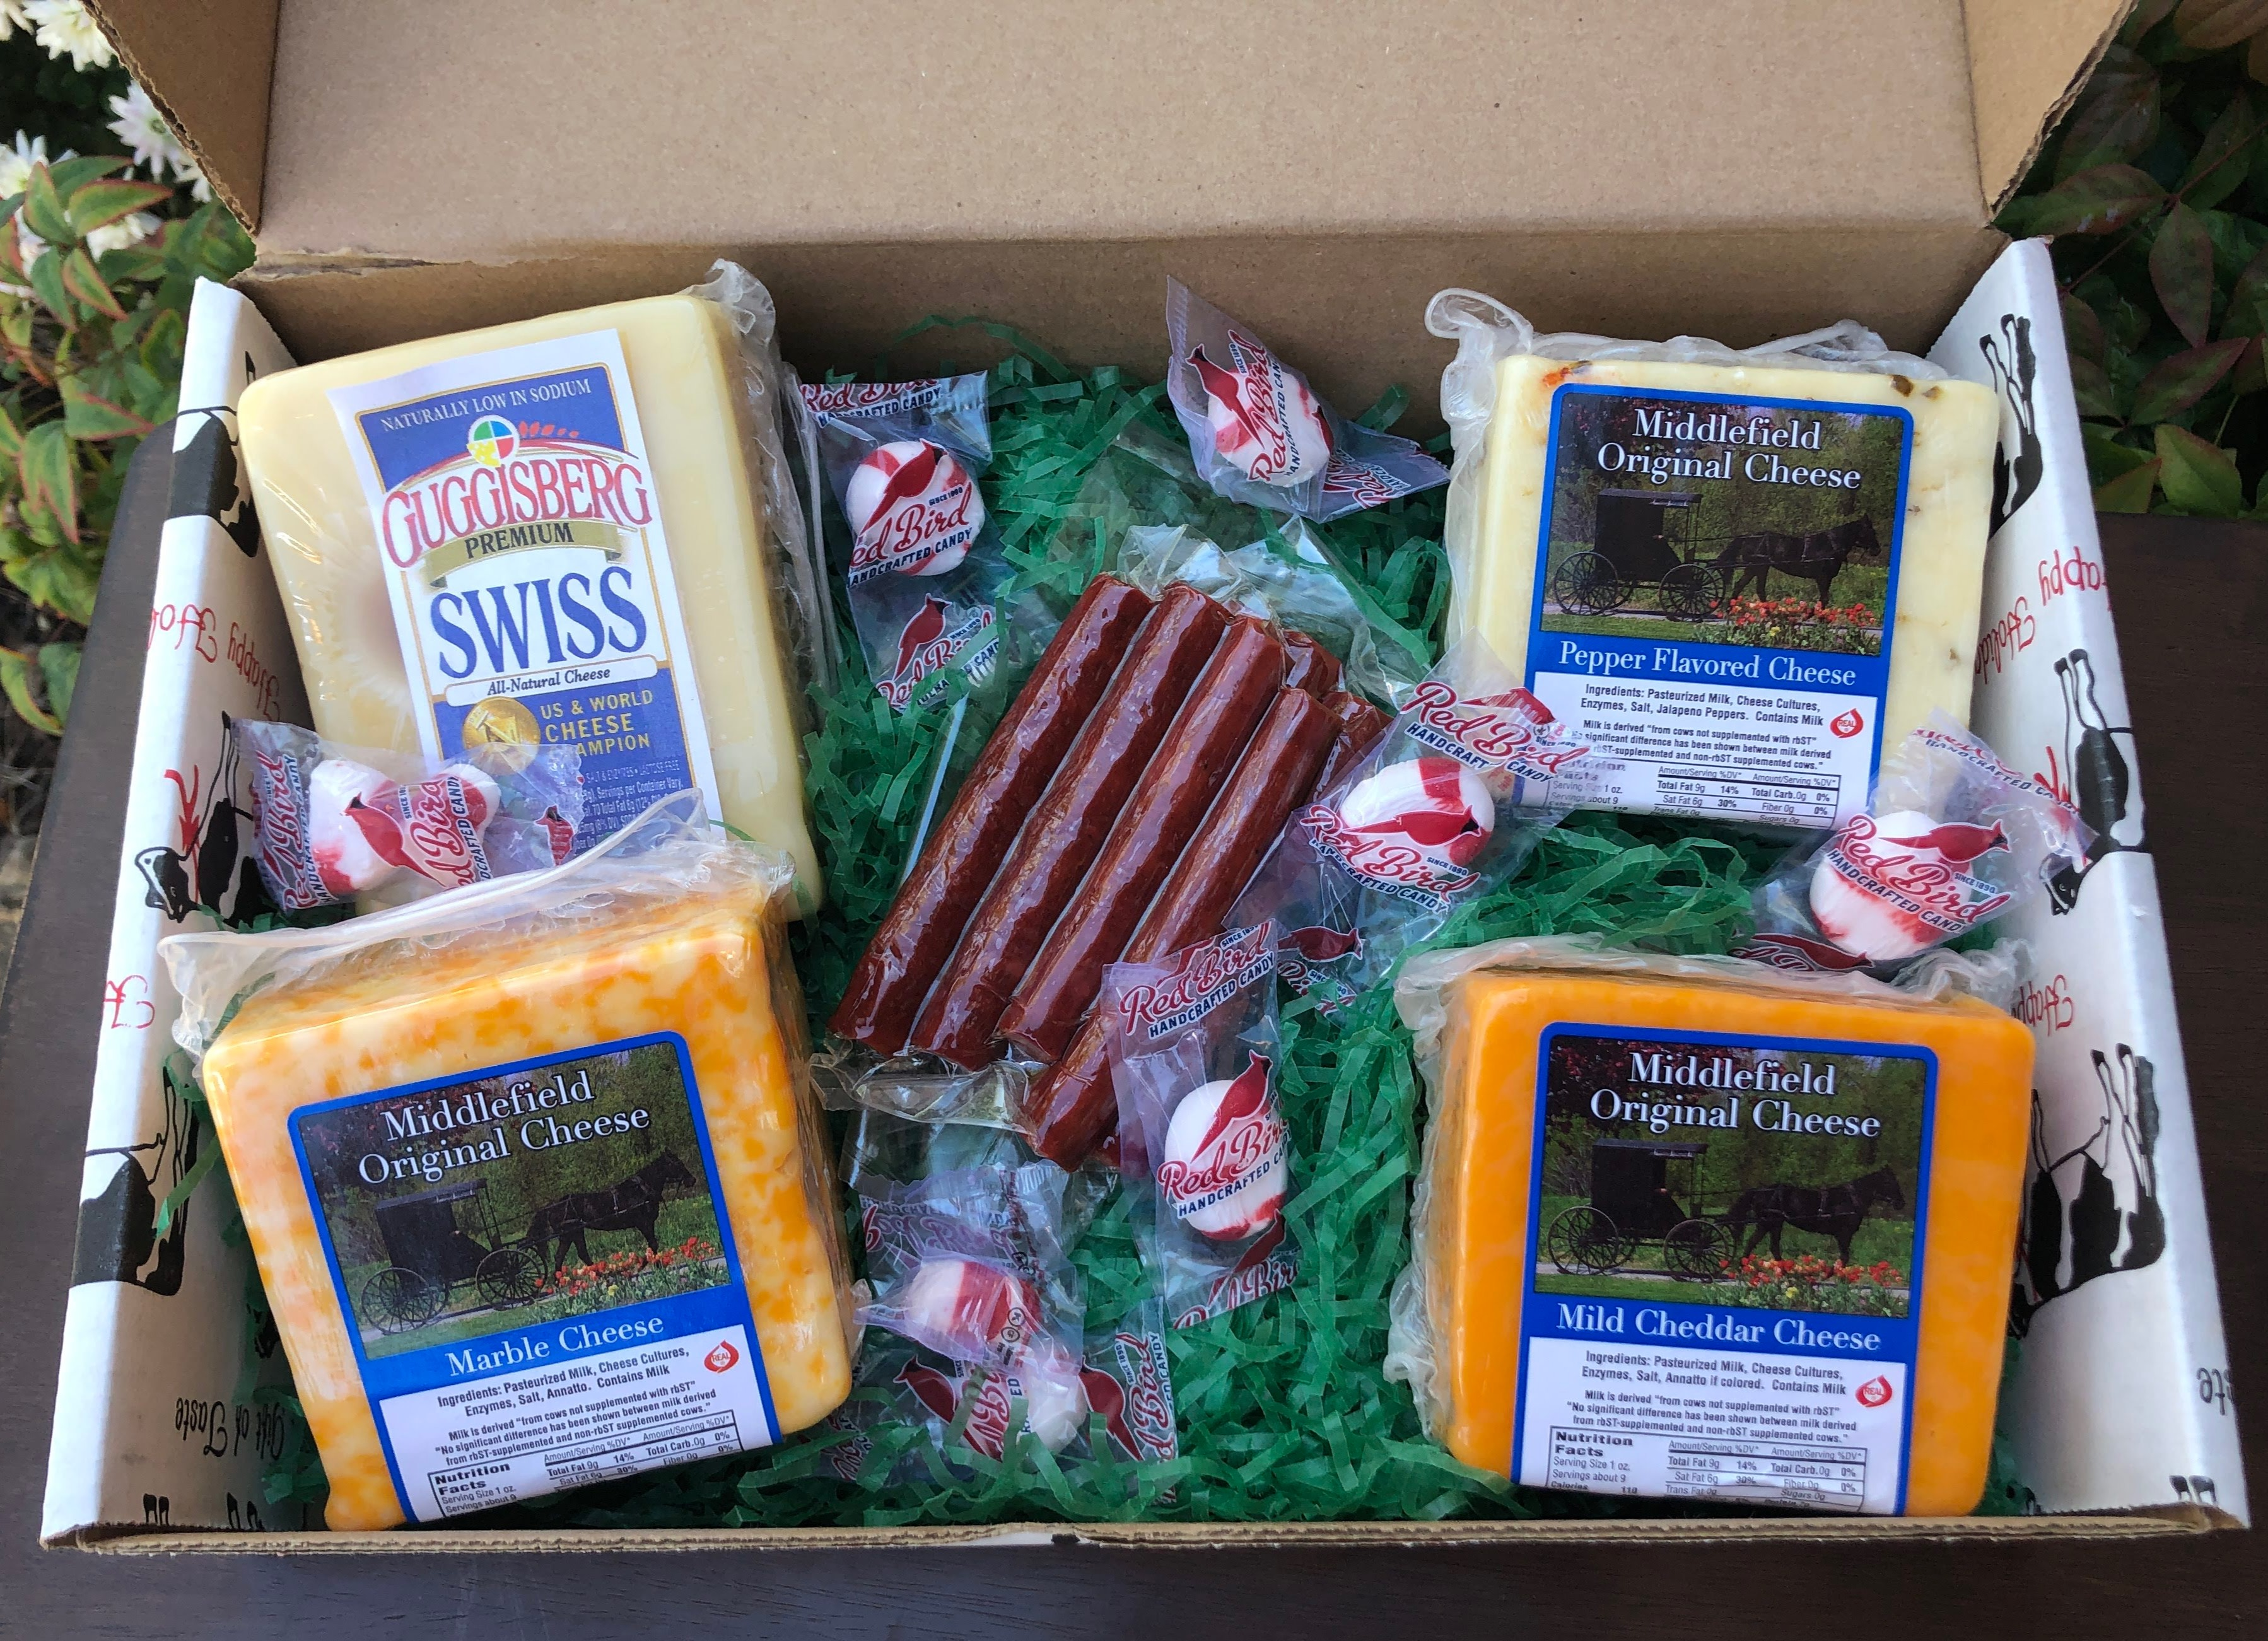 Small Amish Gift Box cheese gift, gift, gift set, set, cheese set, amish cheese gift box, amish cheese box, amish cheeses, amish beef sticks, assorted candies, candies, candy, beef, beef sticks, amish candy, simply cheese gift box, organic cheese, organic amish cheese, cheese, amish, amish farm, amish organic cheese, simply cheese, local amish cheese, amish cheese near me